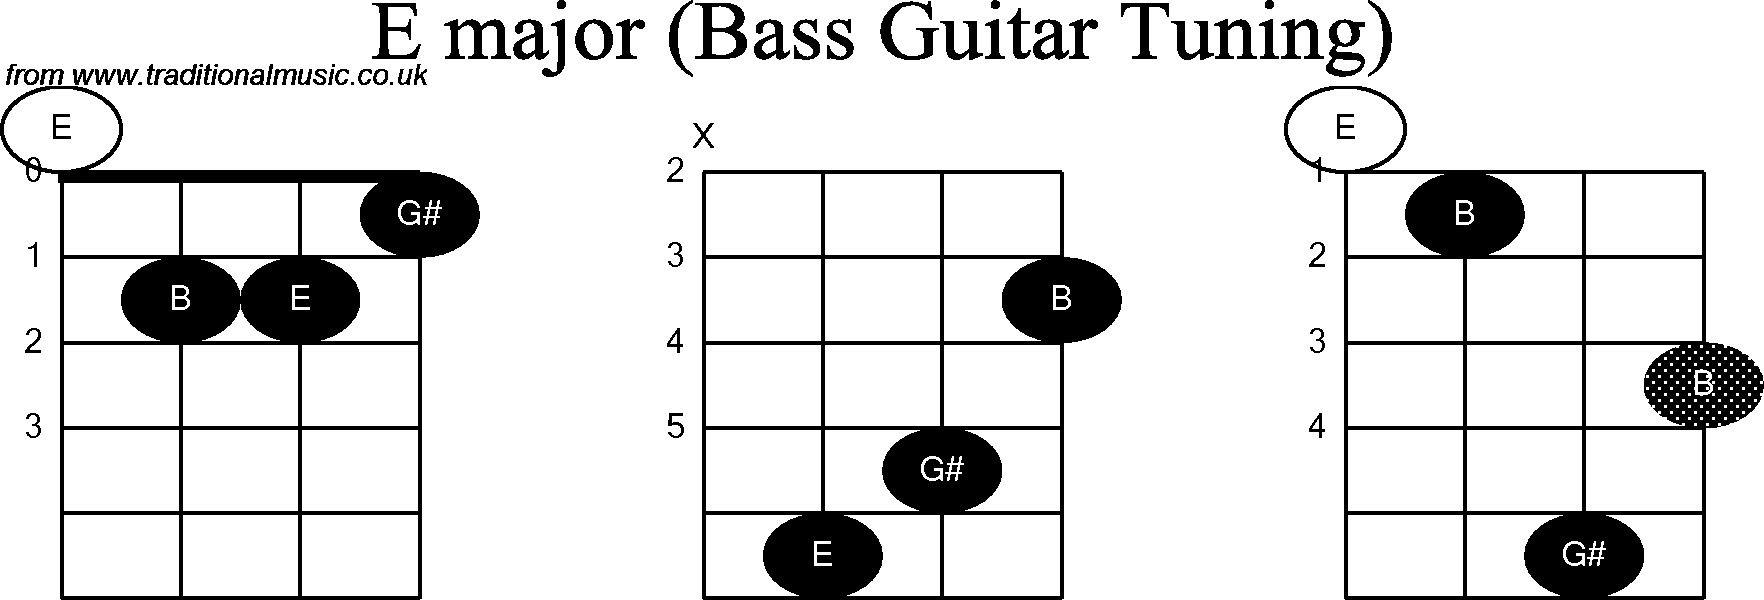 Bass Guitar Chord Diagrams For E